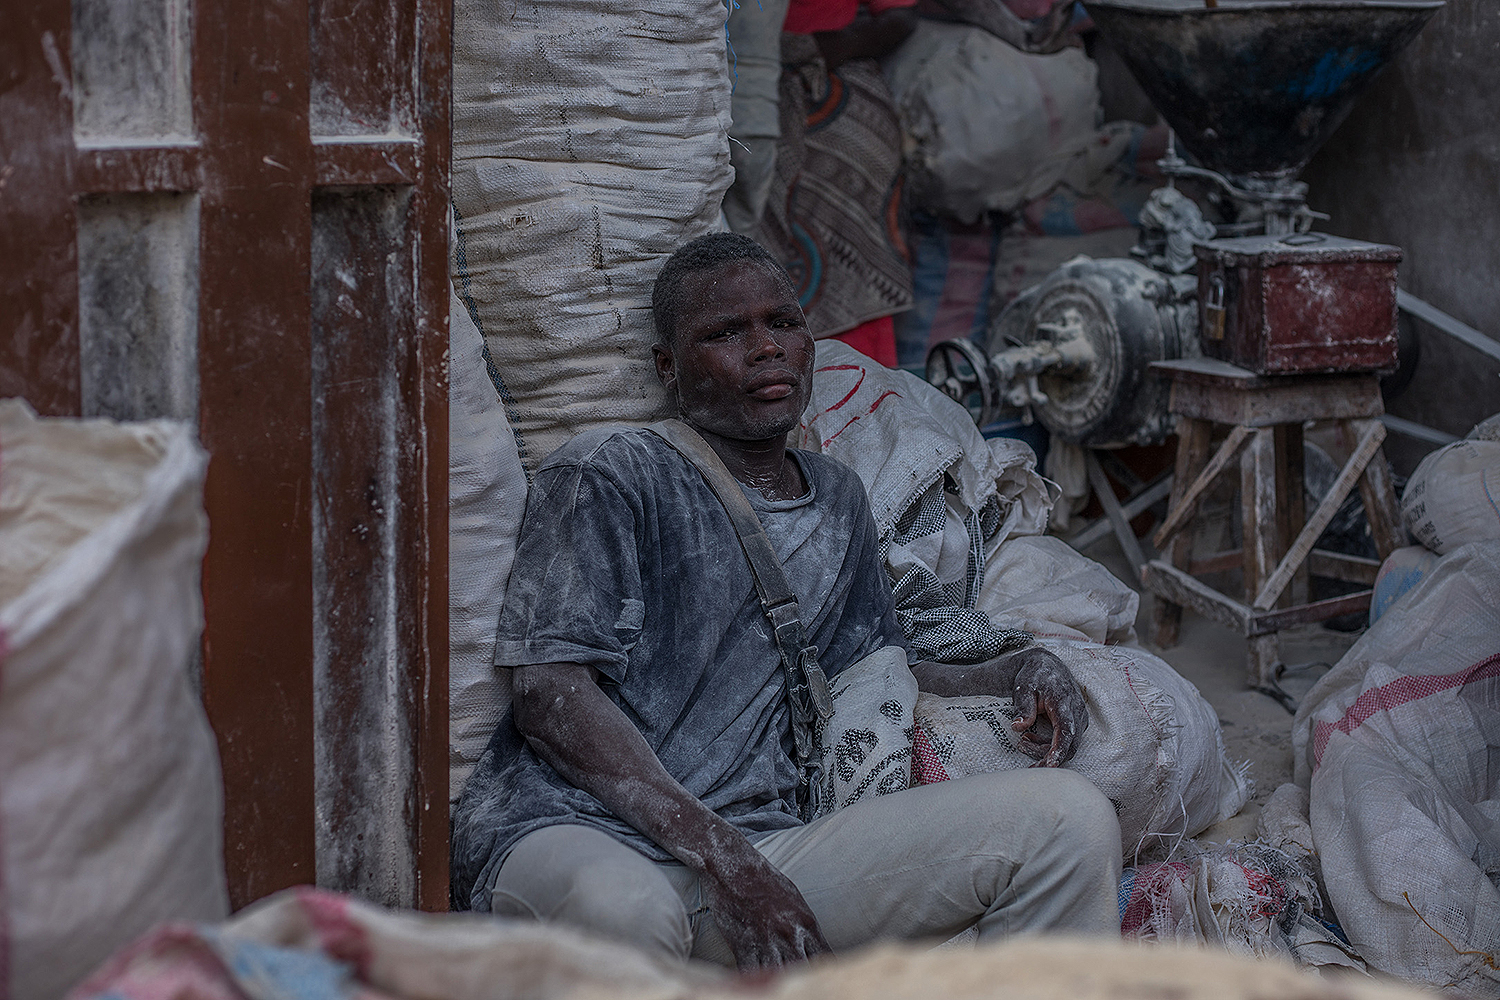 A miller rests after filling bags of flour at Benin's Dantokpa Market, the largest open-air market in West Africa, on April 20. YANICK FOLLY/AFP via Getty Images